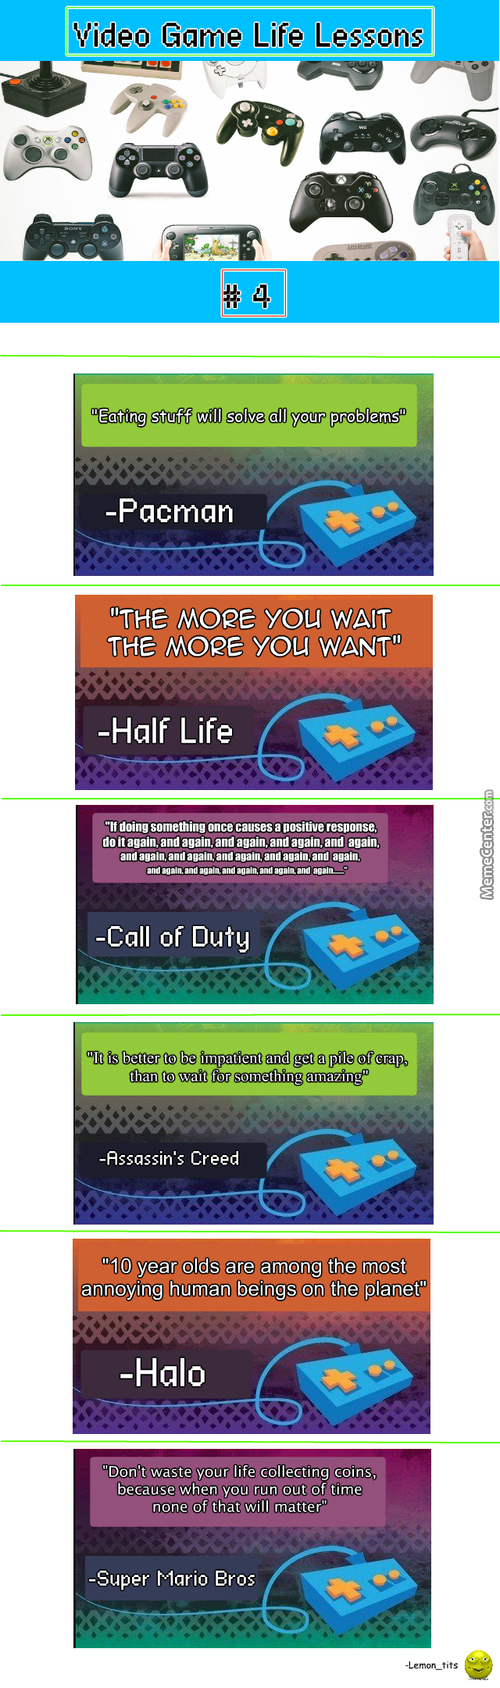 Just Video Games Trying To Teach Us Life Lessons... #4